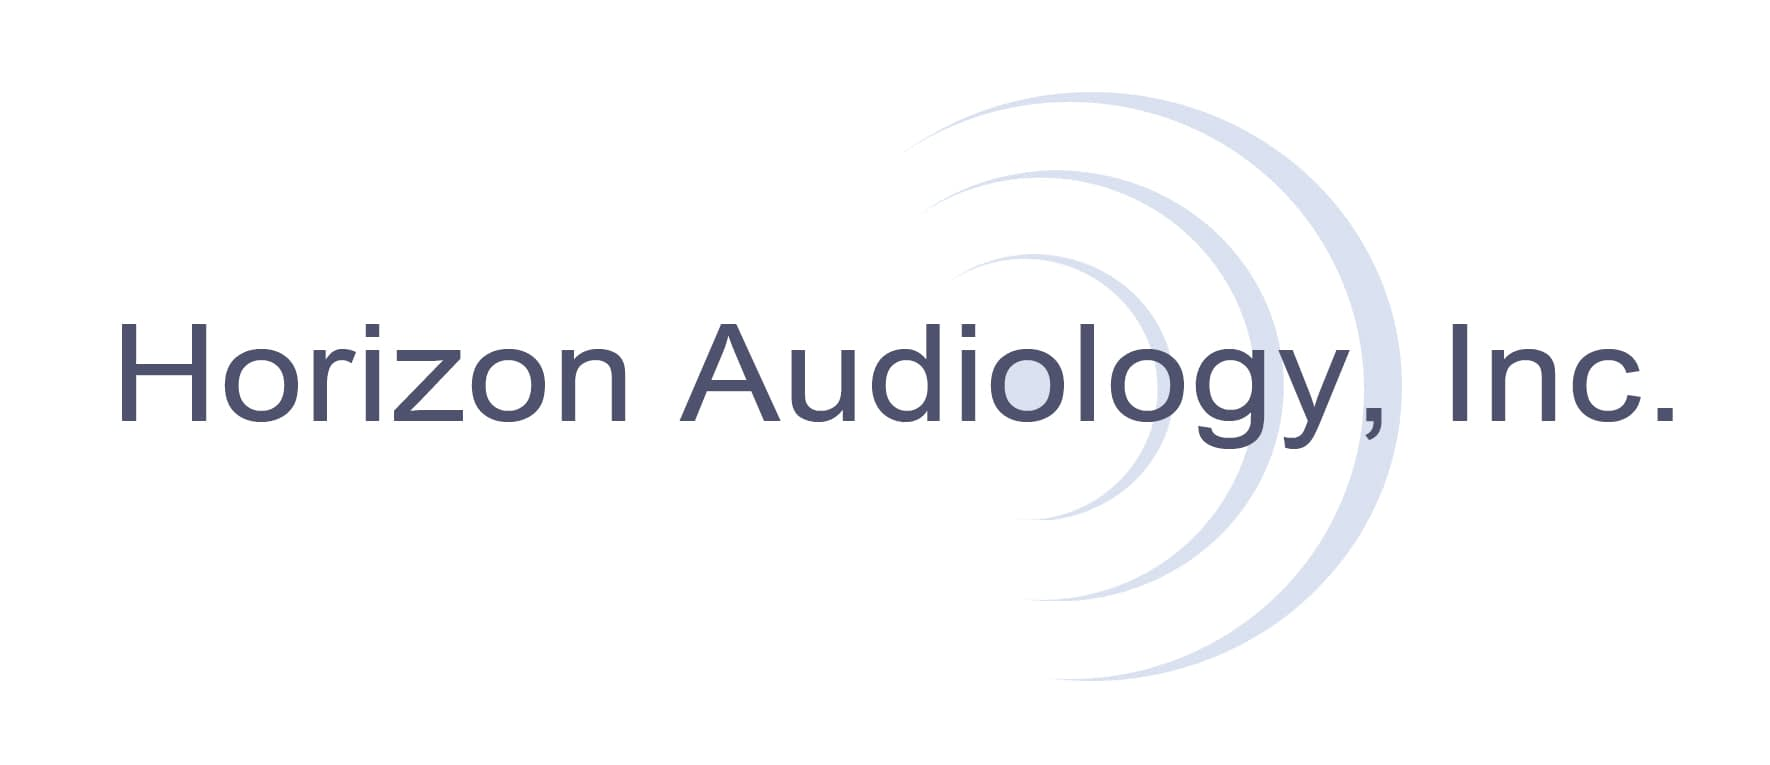 Horizon Audiology, Inc.